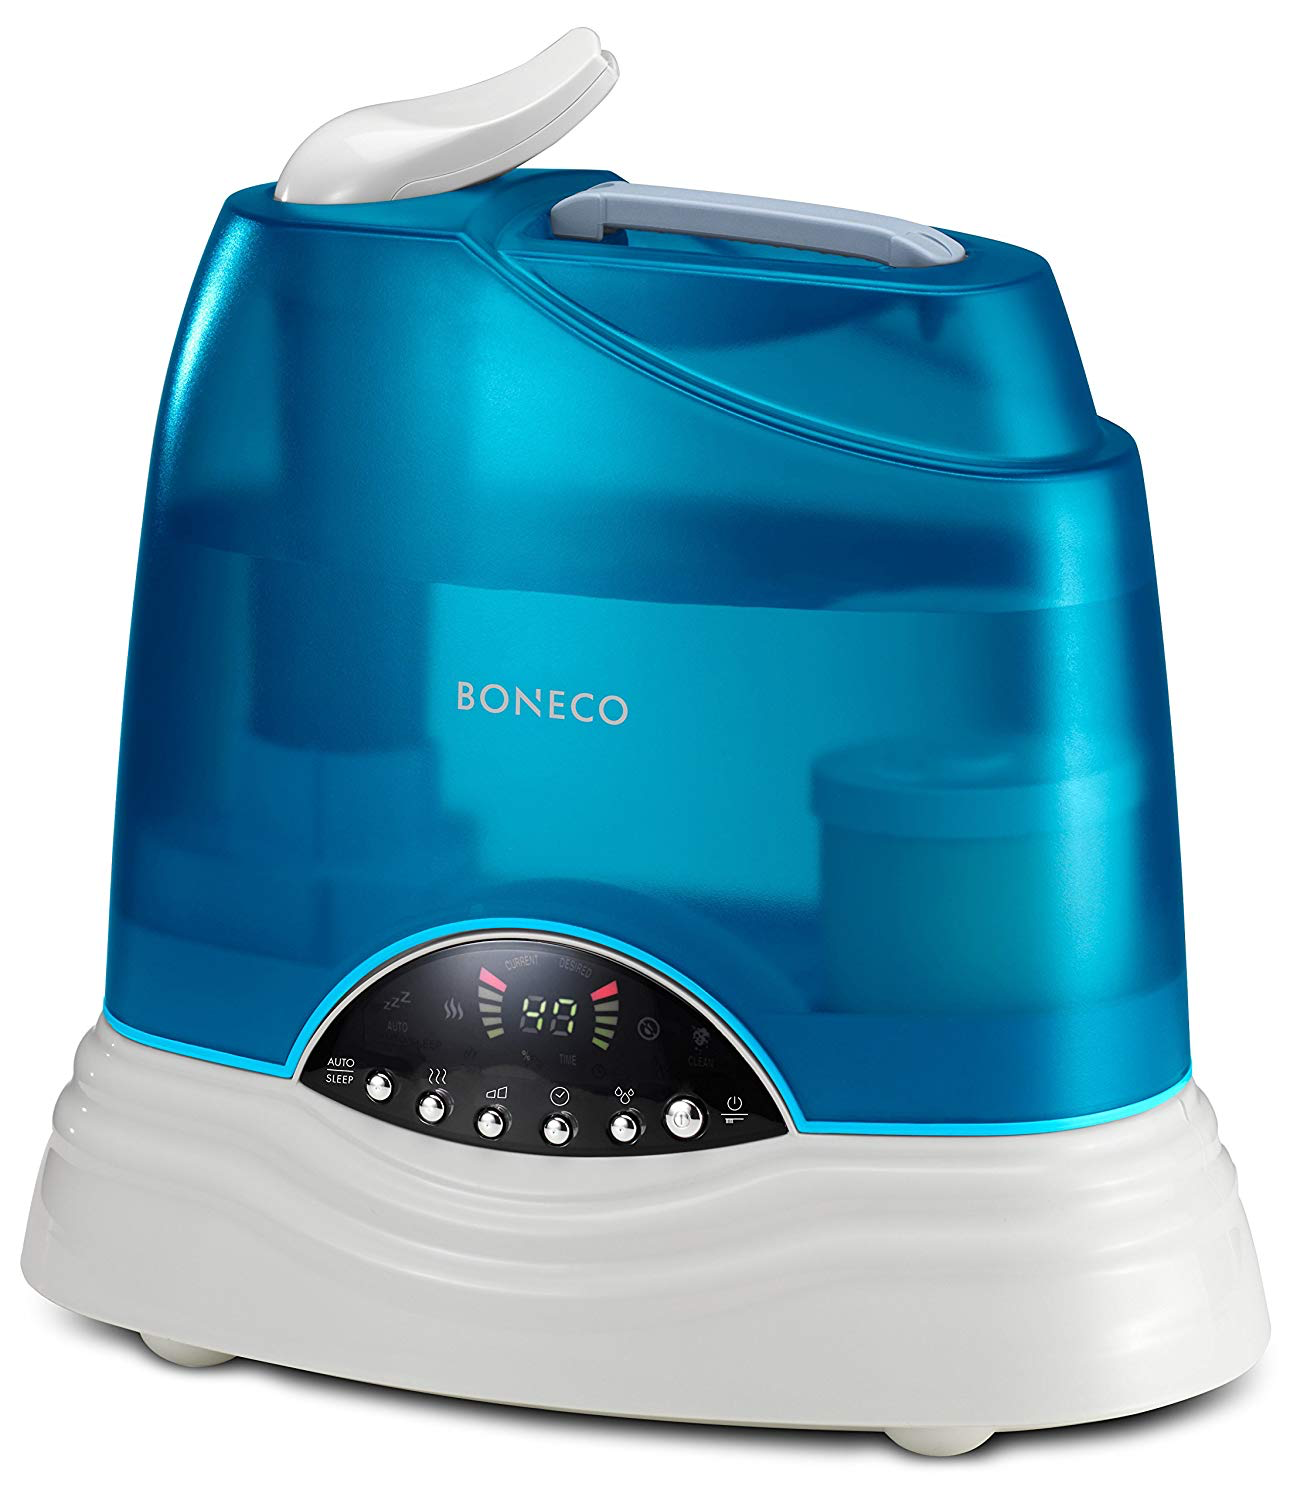 image 20 5 Best Humidifiers 2021 - Best Humidifiers for Home and Office